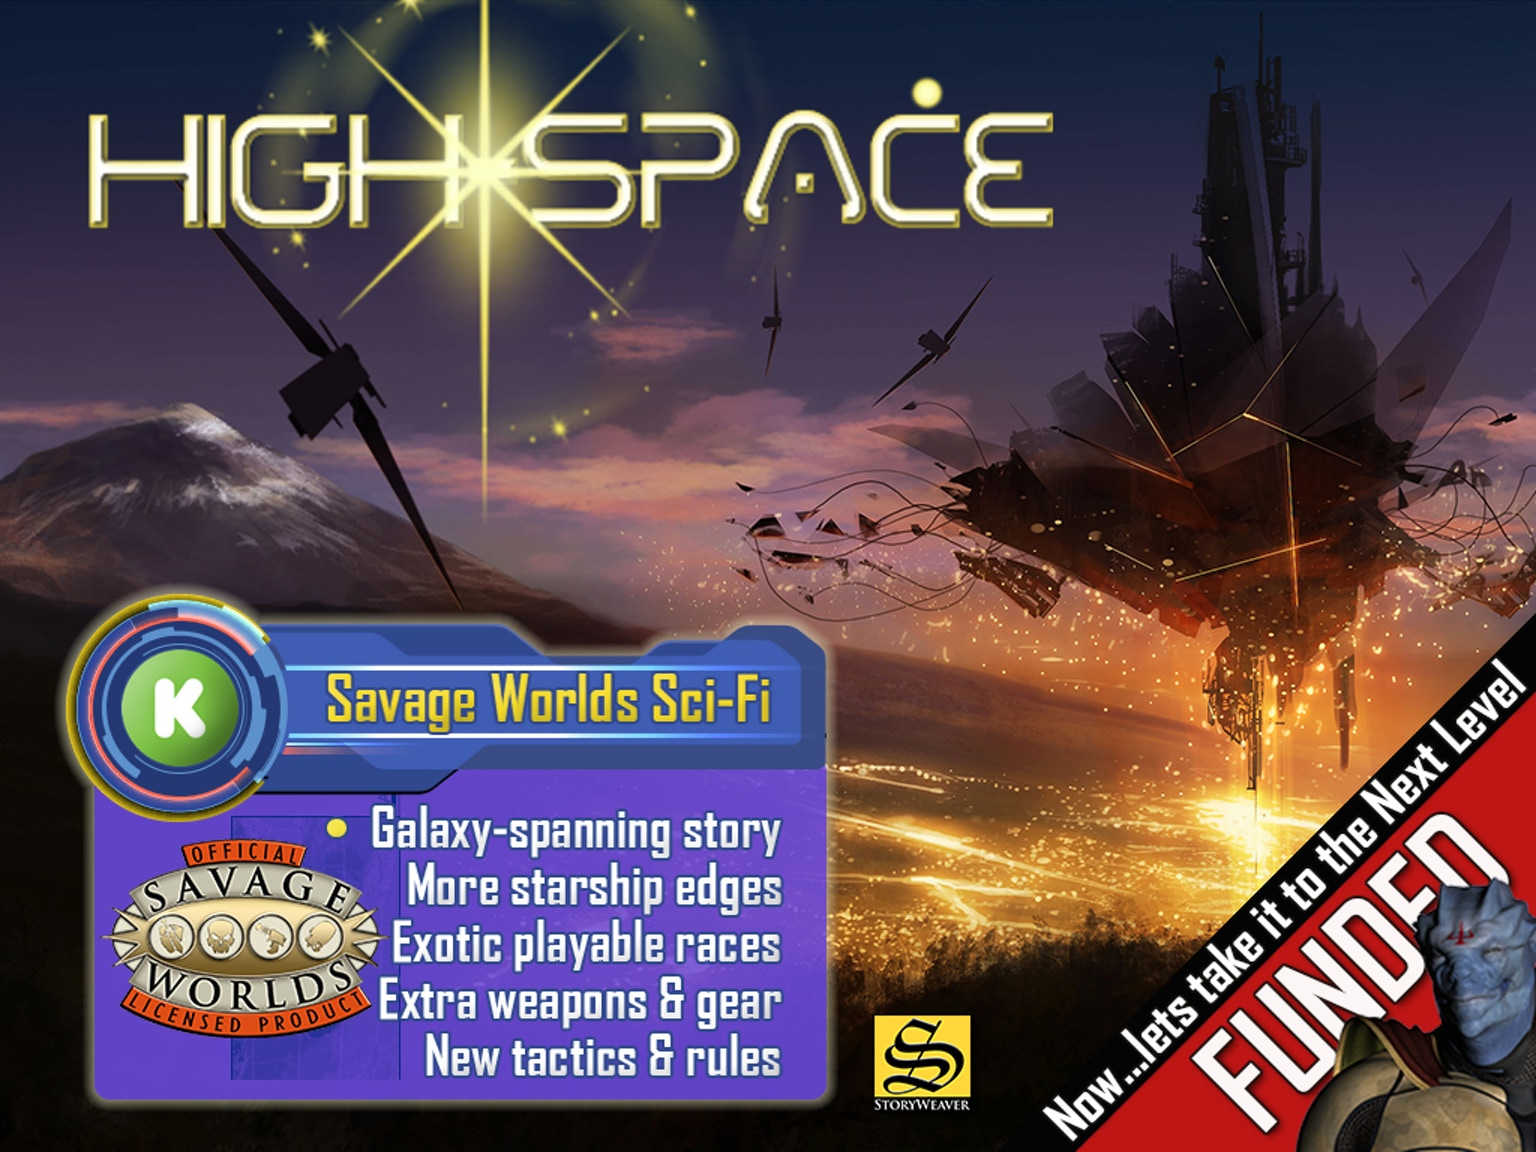 High space the sci fi tabletop rpg for savage worlds by for Bureau 13 savage worlds